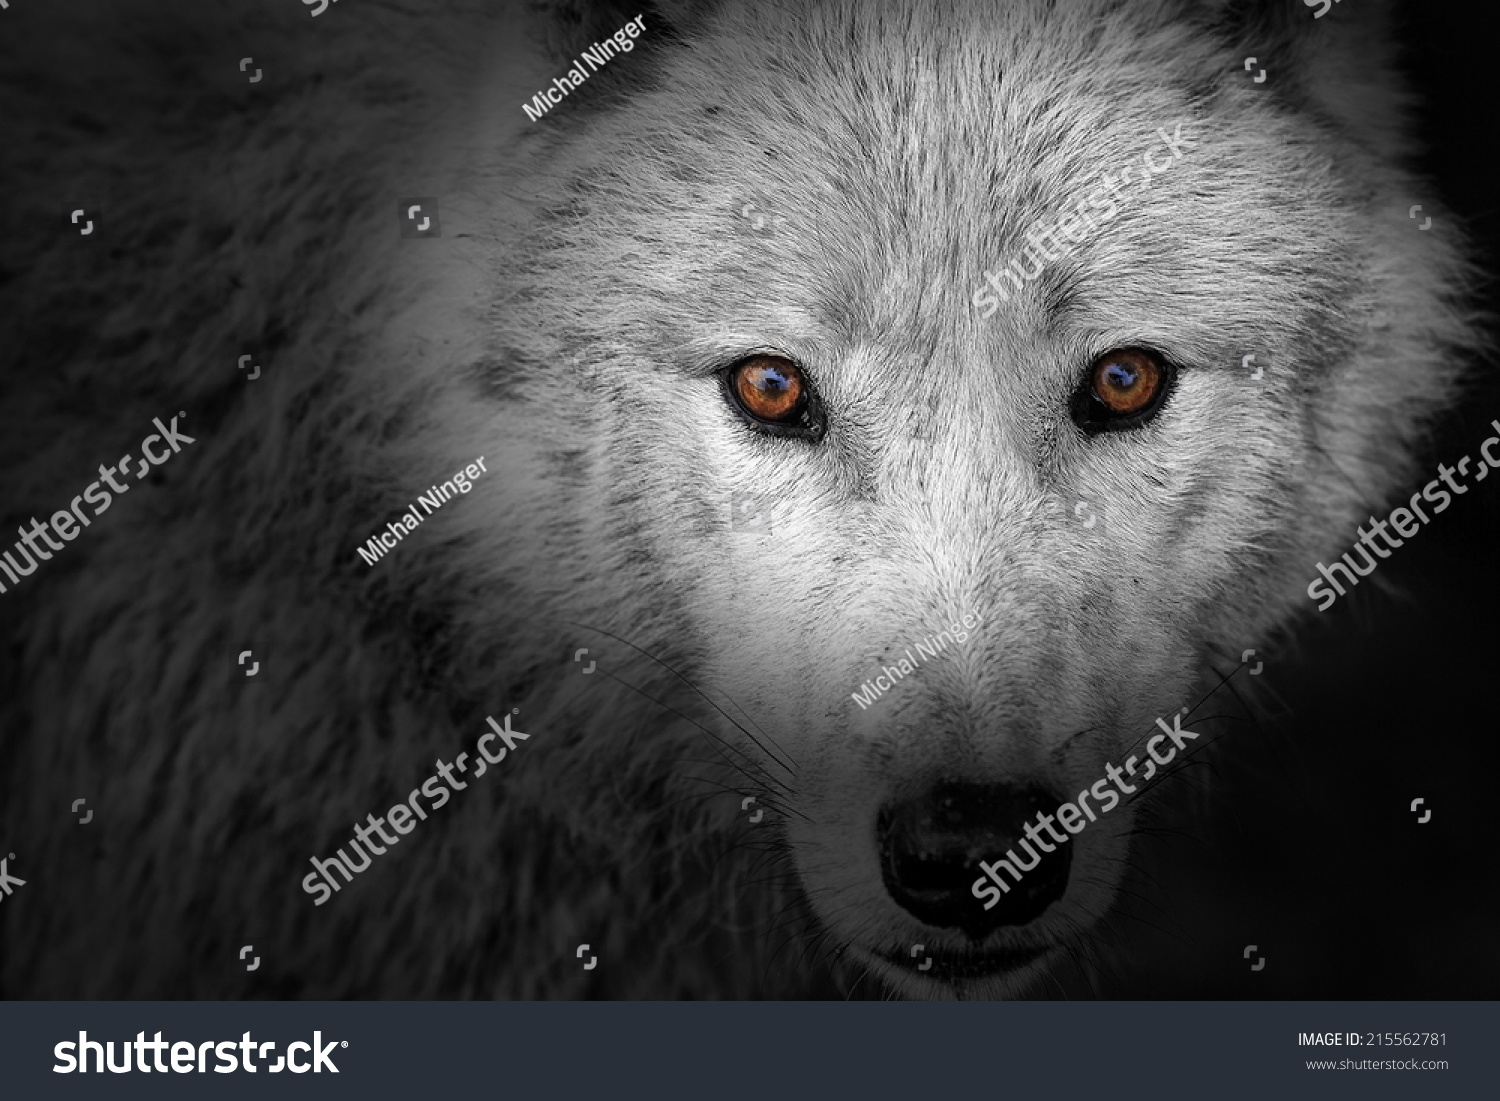 wolf eyes in black and white detail